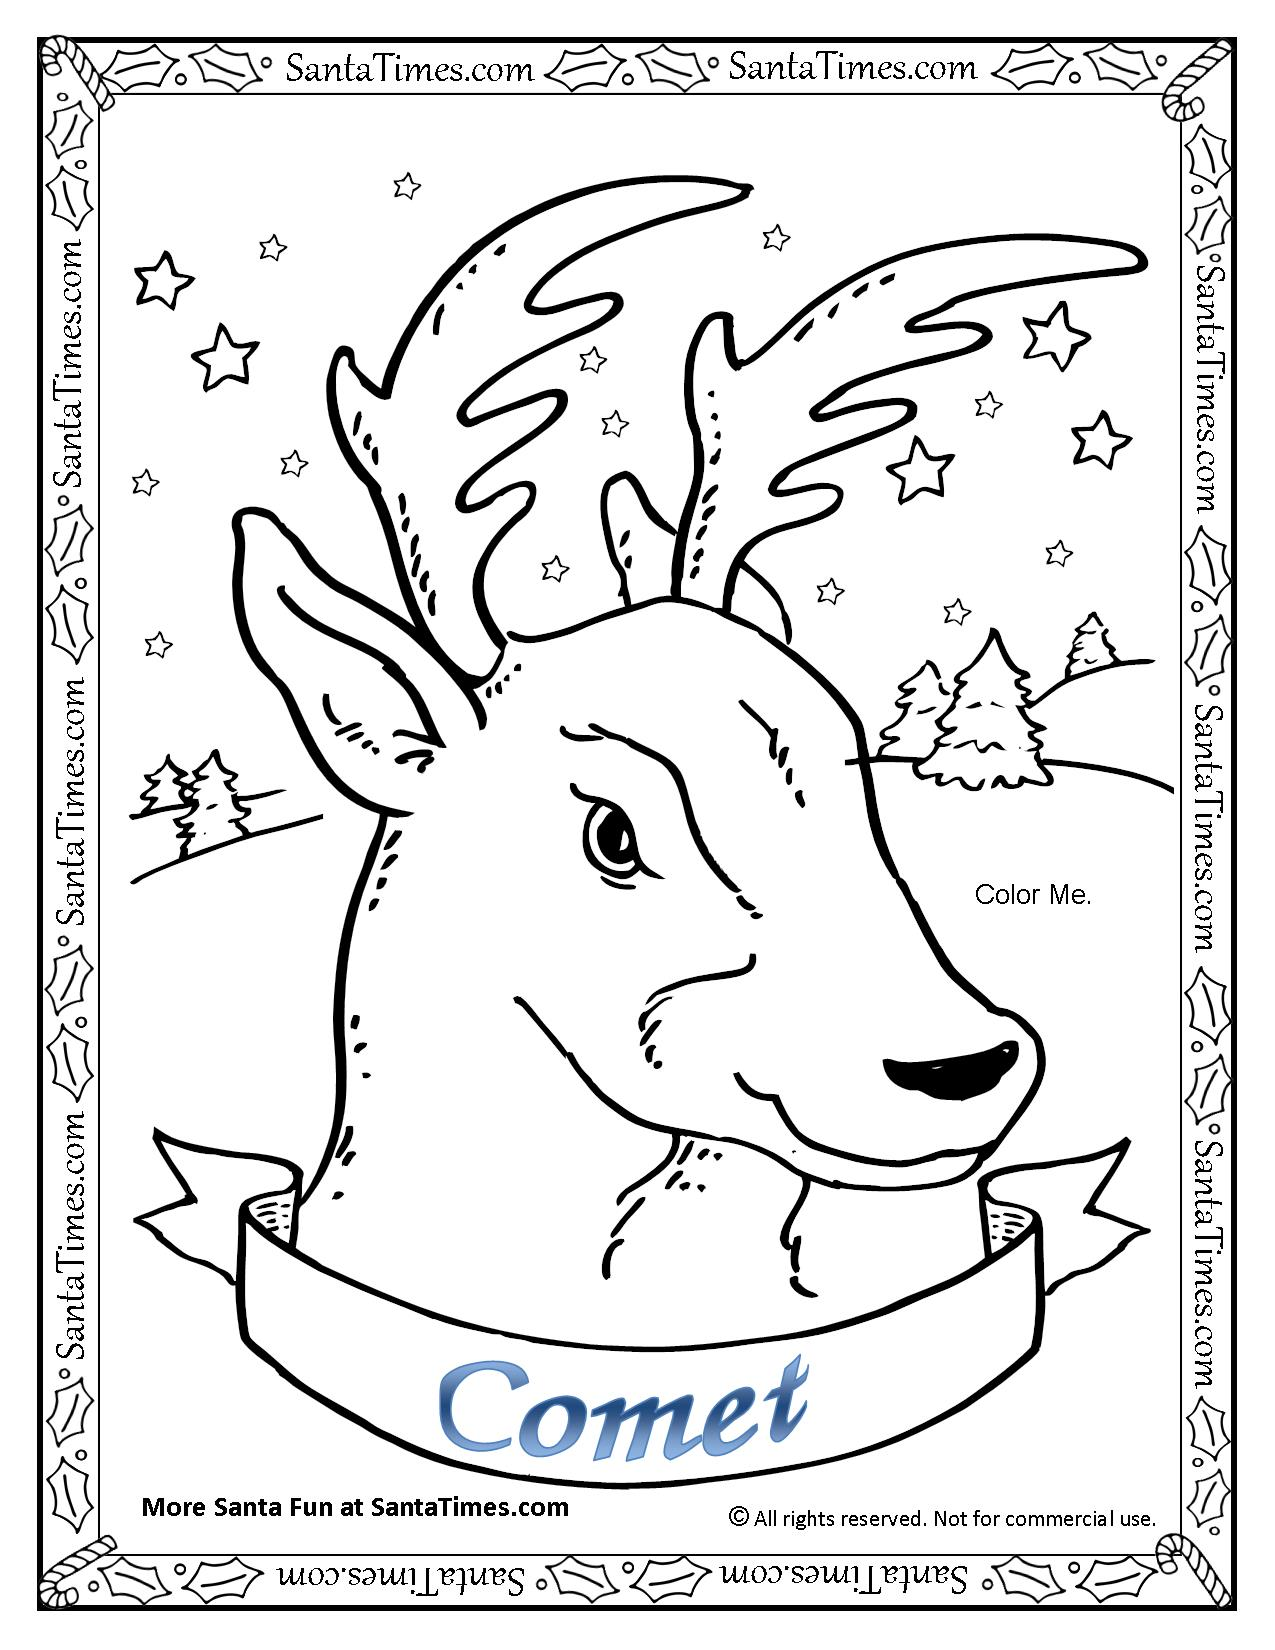 Santa Reindeer Coloring Pages Printable With Comet The